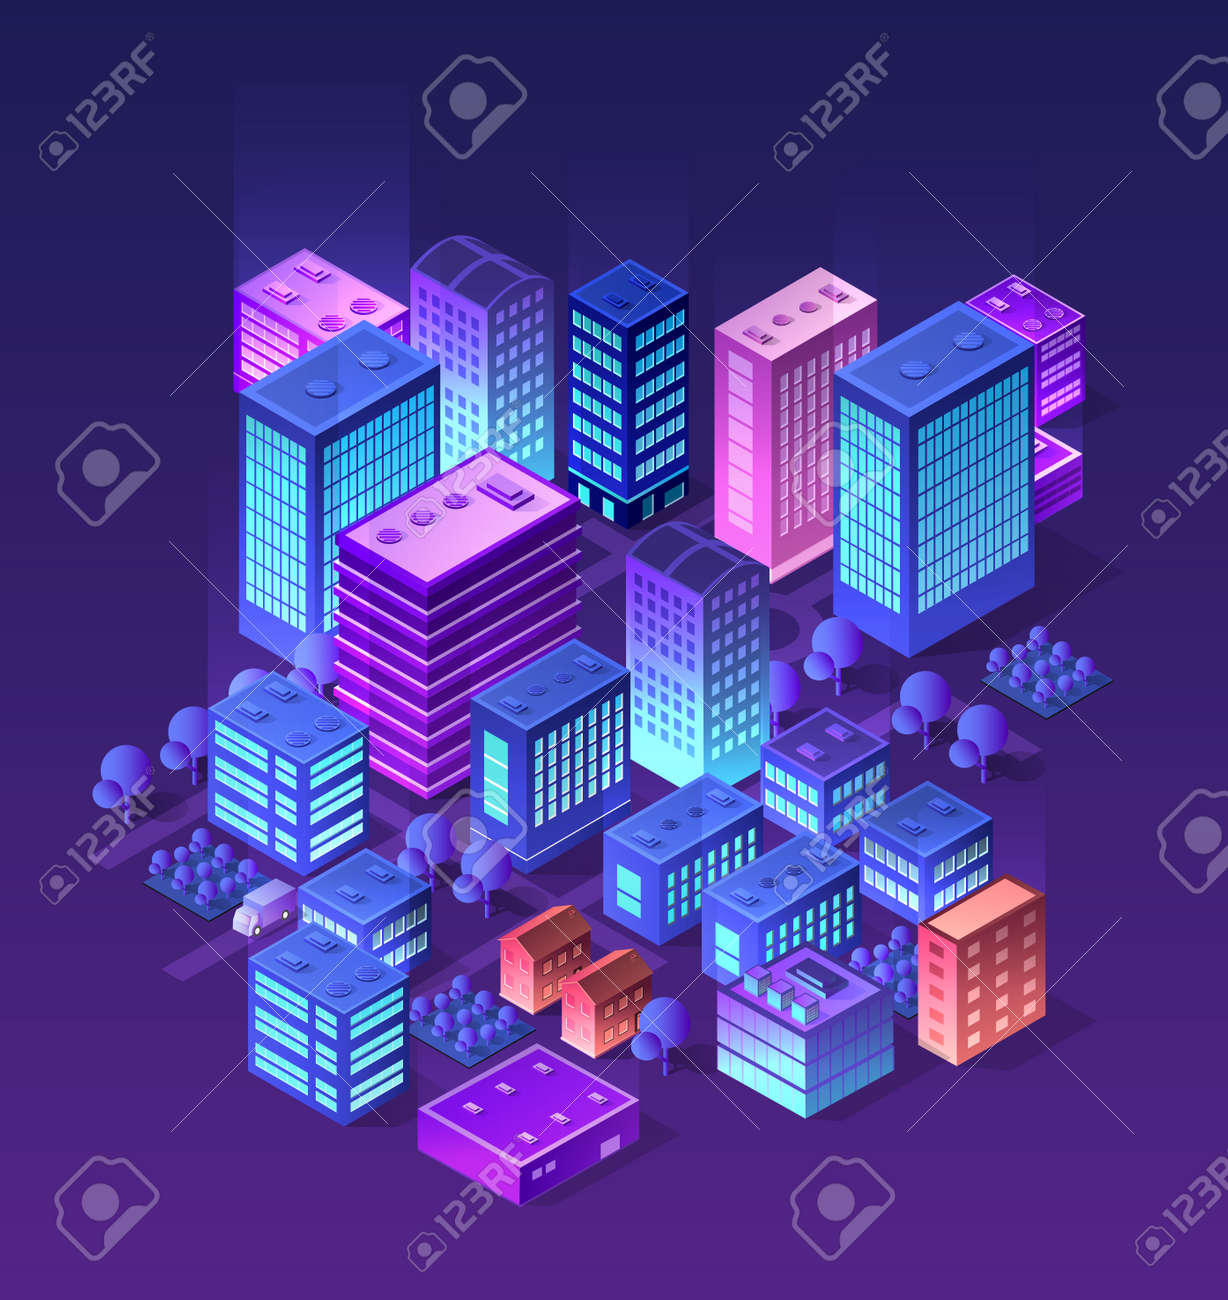 future 3d futuristic isometric city from smart business technology rh 123rf com